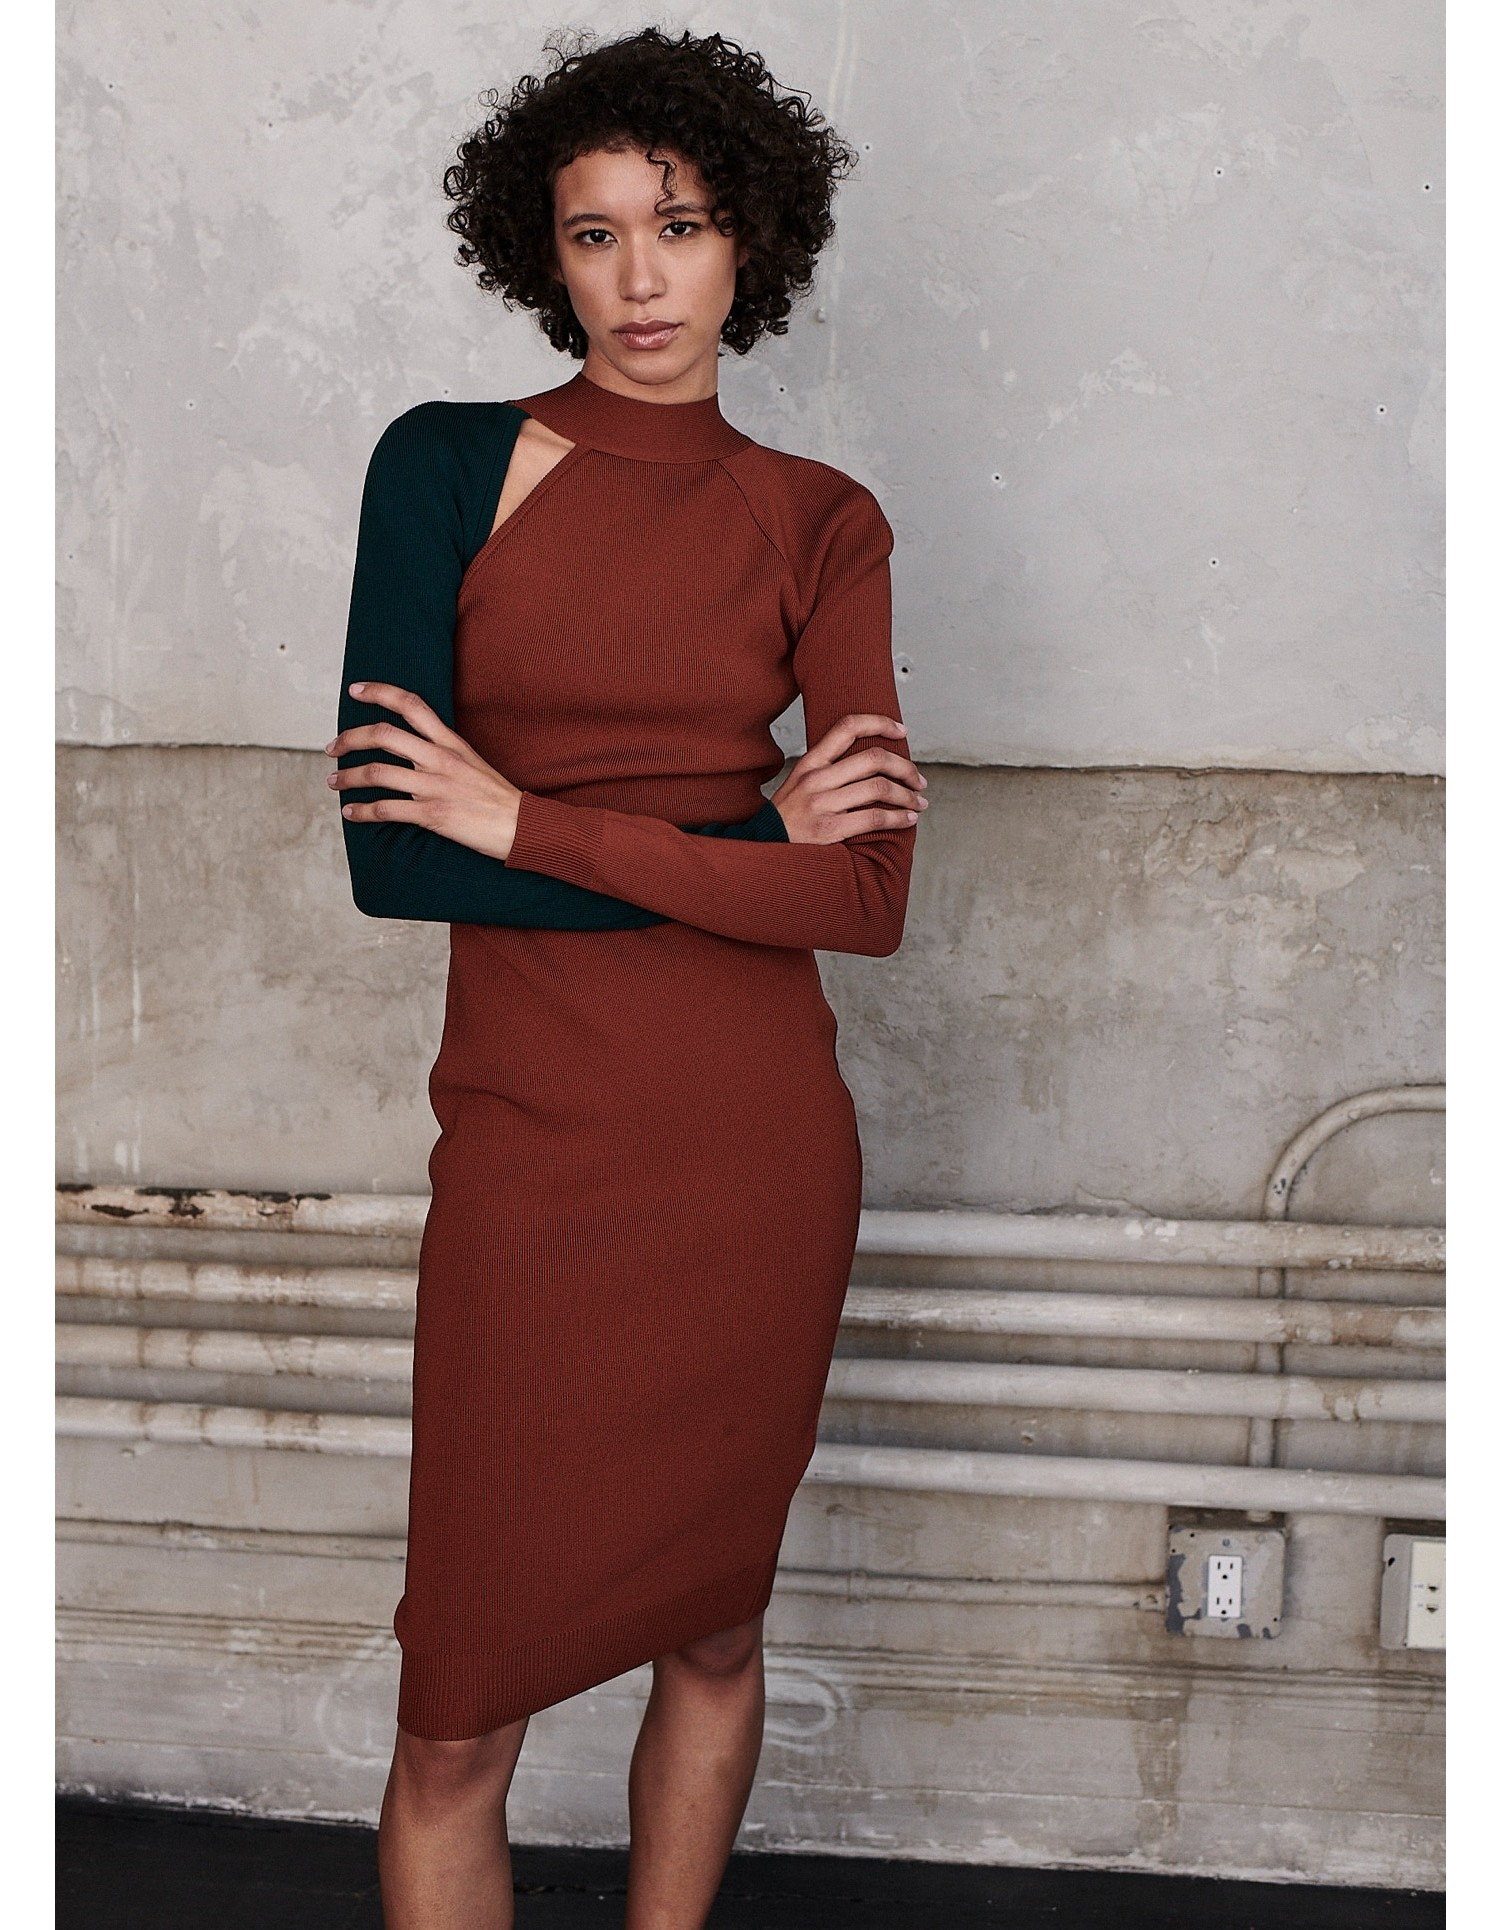 MONSE Bi Color Tie Back Knit Dress in Cognac and Forest on Model Front View